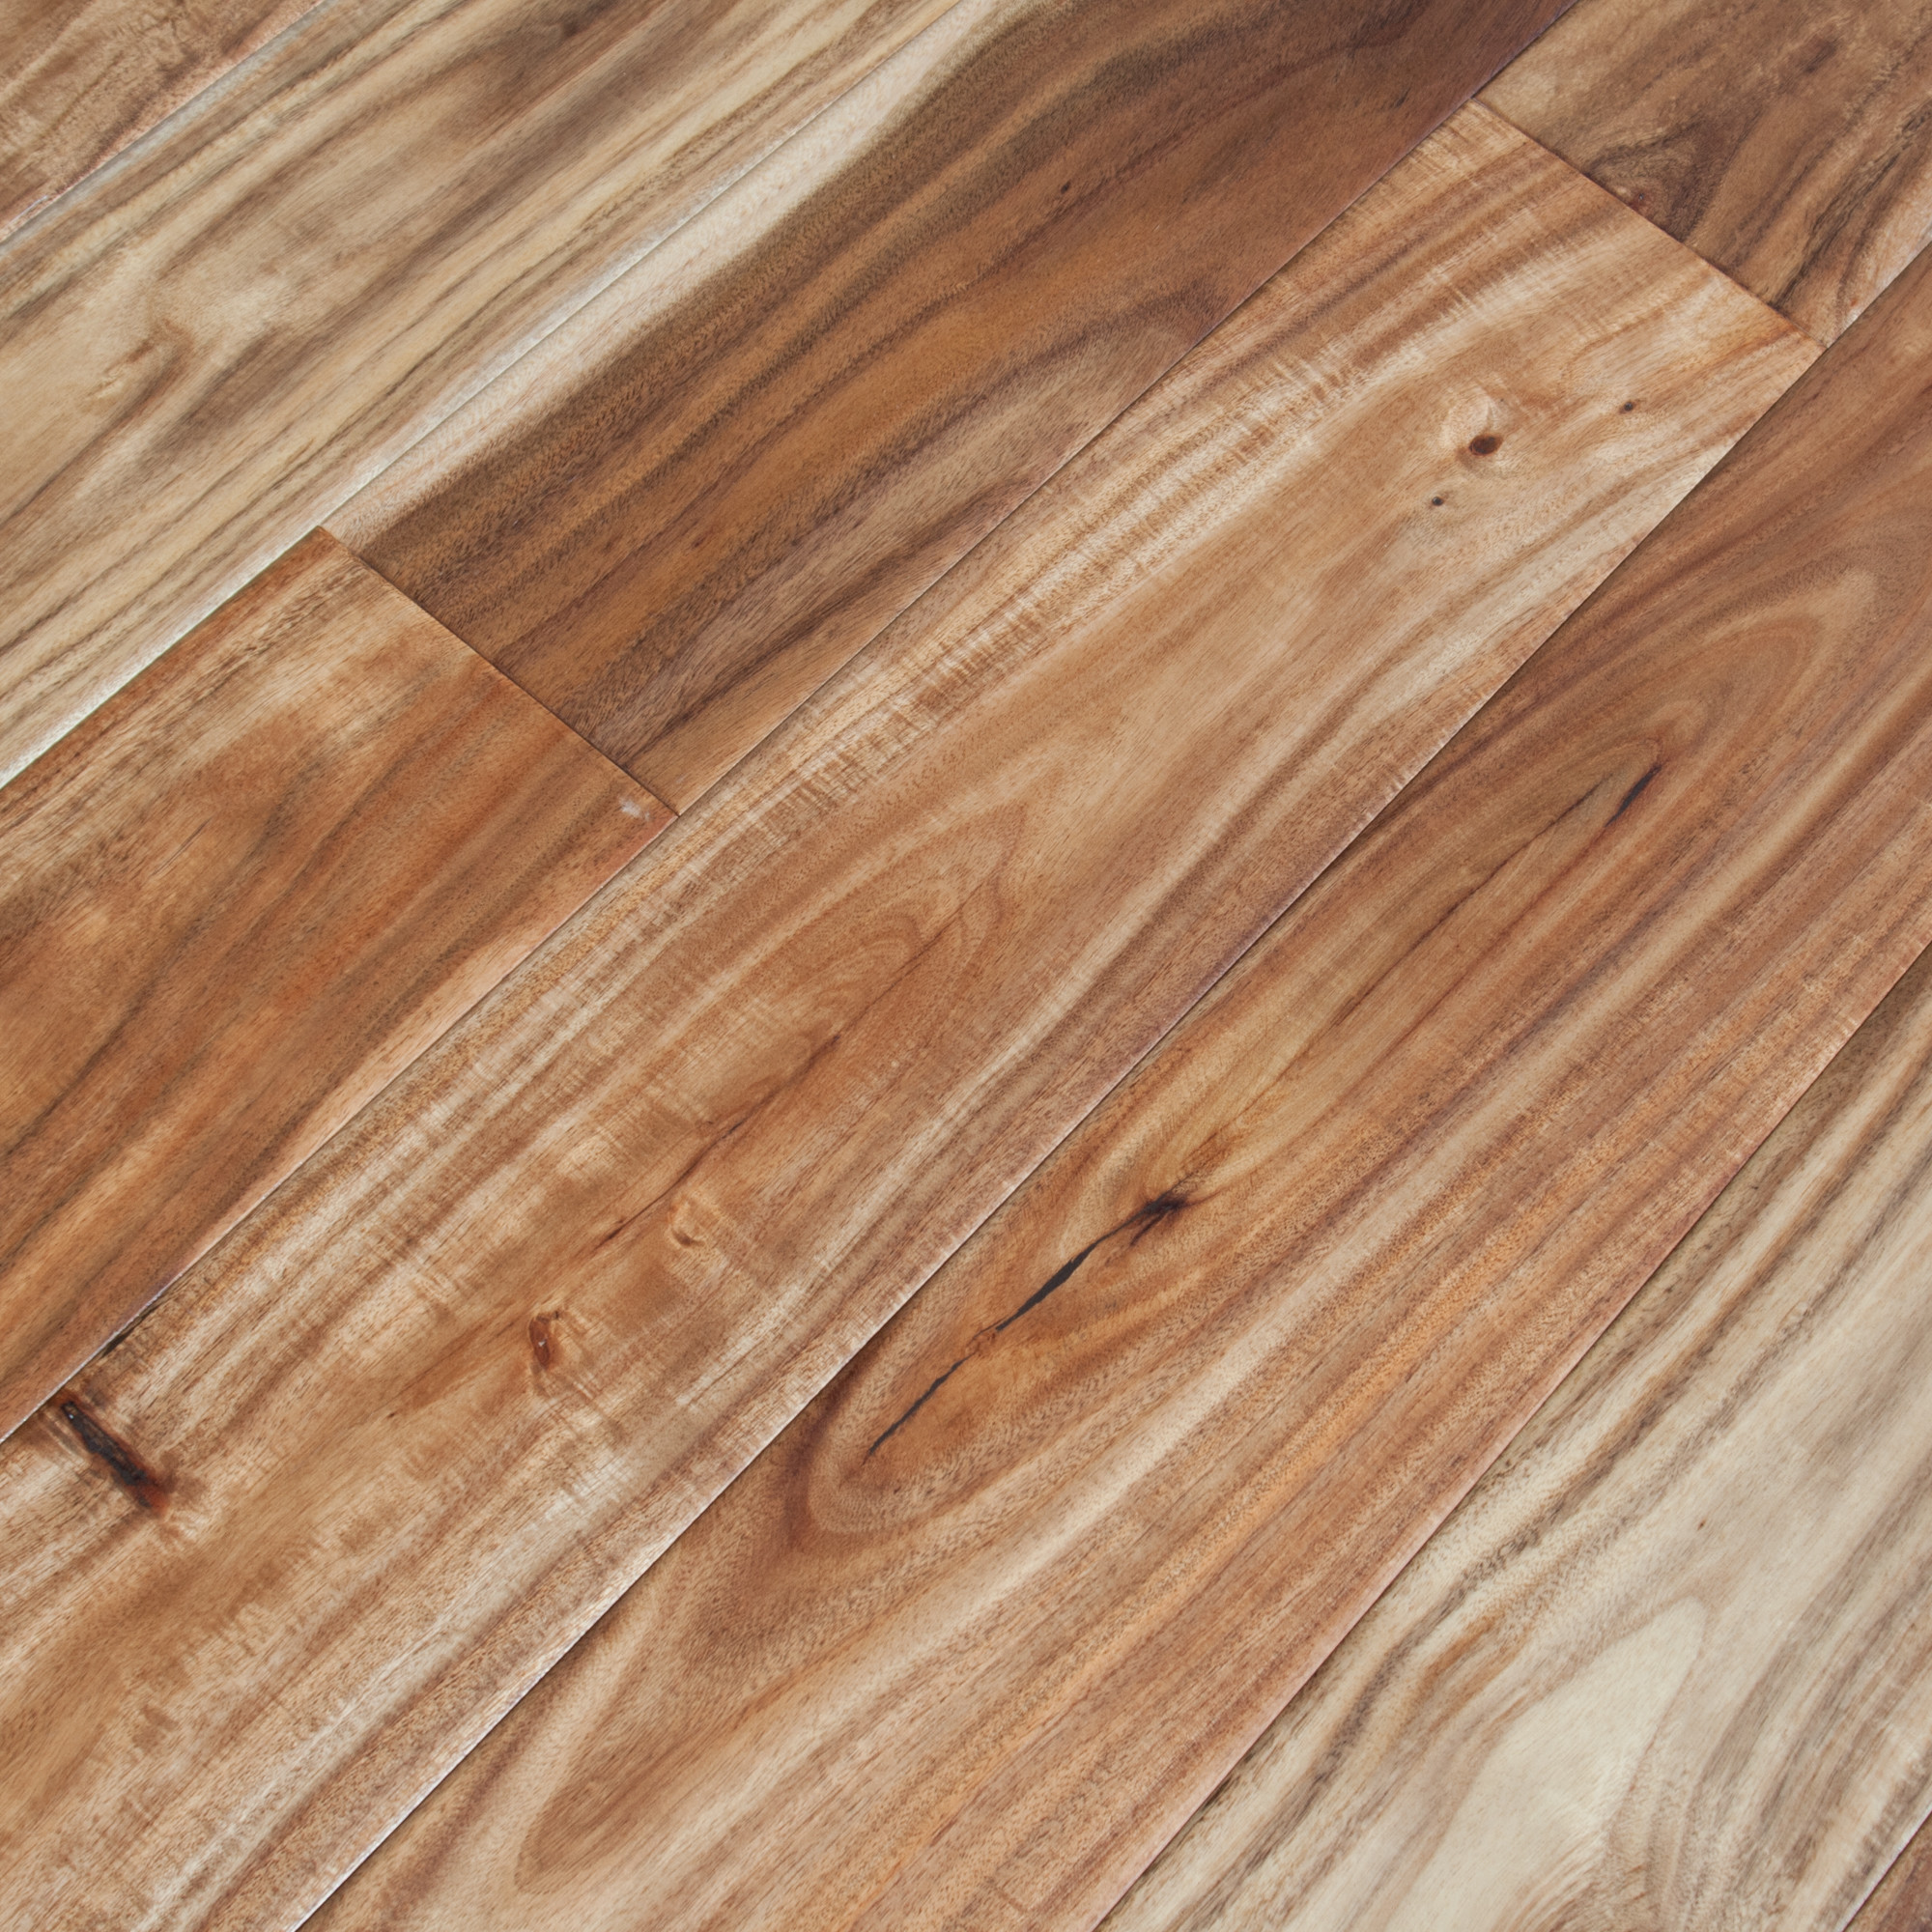 staining hardwood floors by hand of 9 mile creek acacia hand scraped acacia confusa wood floors intended for acacia handscraped natural hardwood flooring